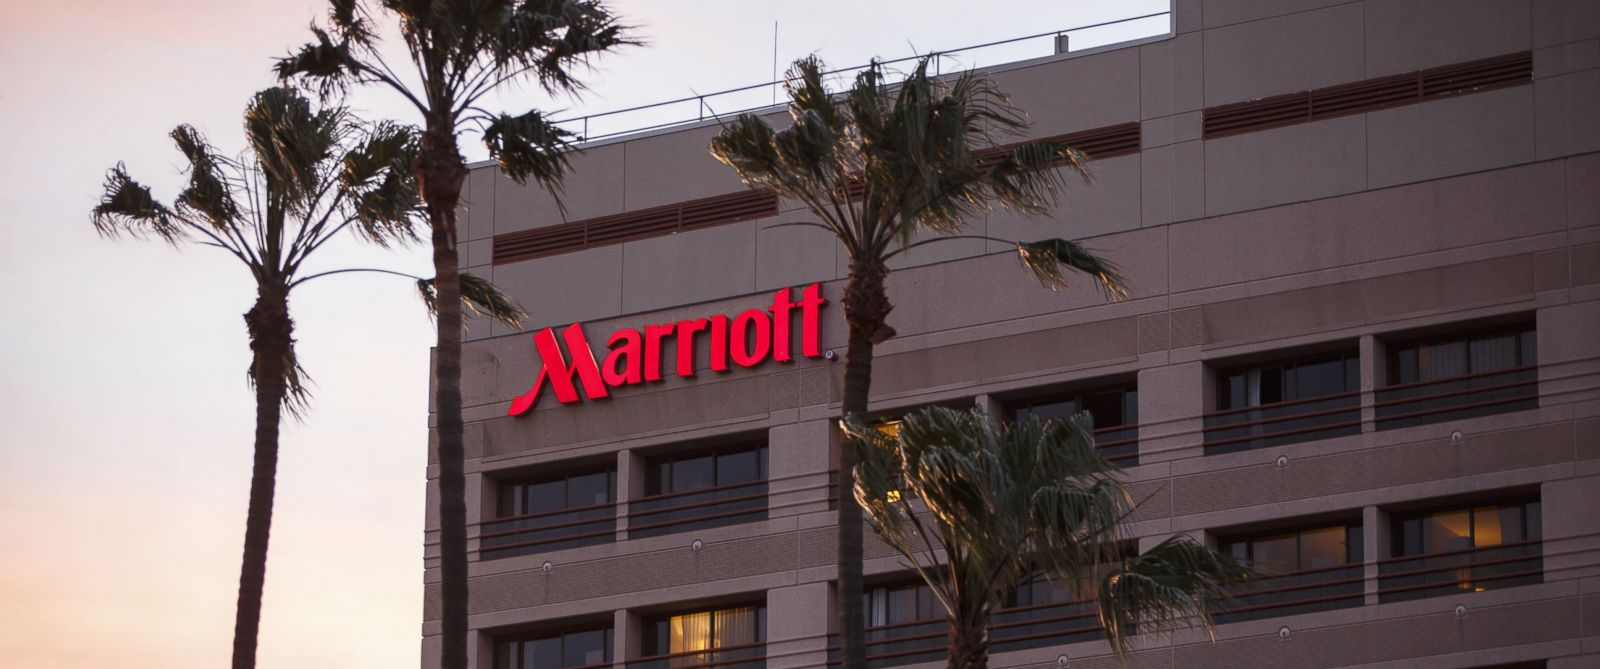 an analysis of marriott international A programmer analyst at marriott international earns an average of $98,892, ranging from $92,941 at the 25th percentile to $104,440 at the 75th percentile, with top earners (the top 10%) earning more than $110,068 compensation is derived from 21 profiles, including base salary, equity and bonus.